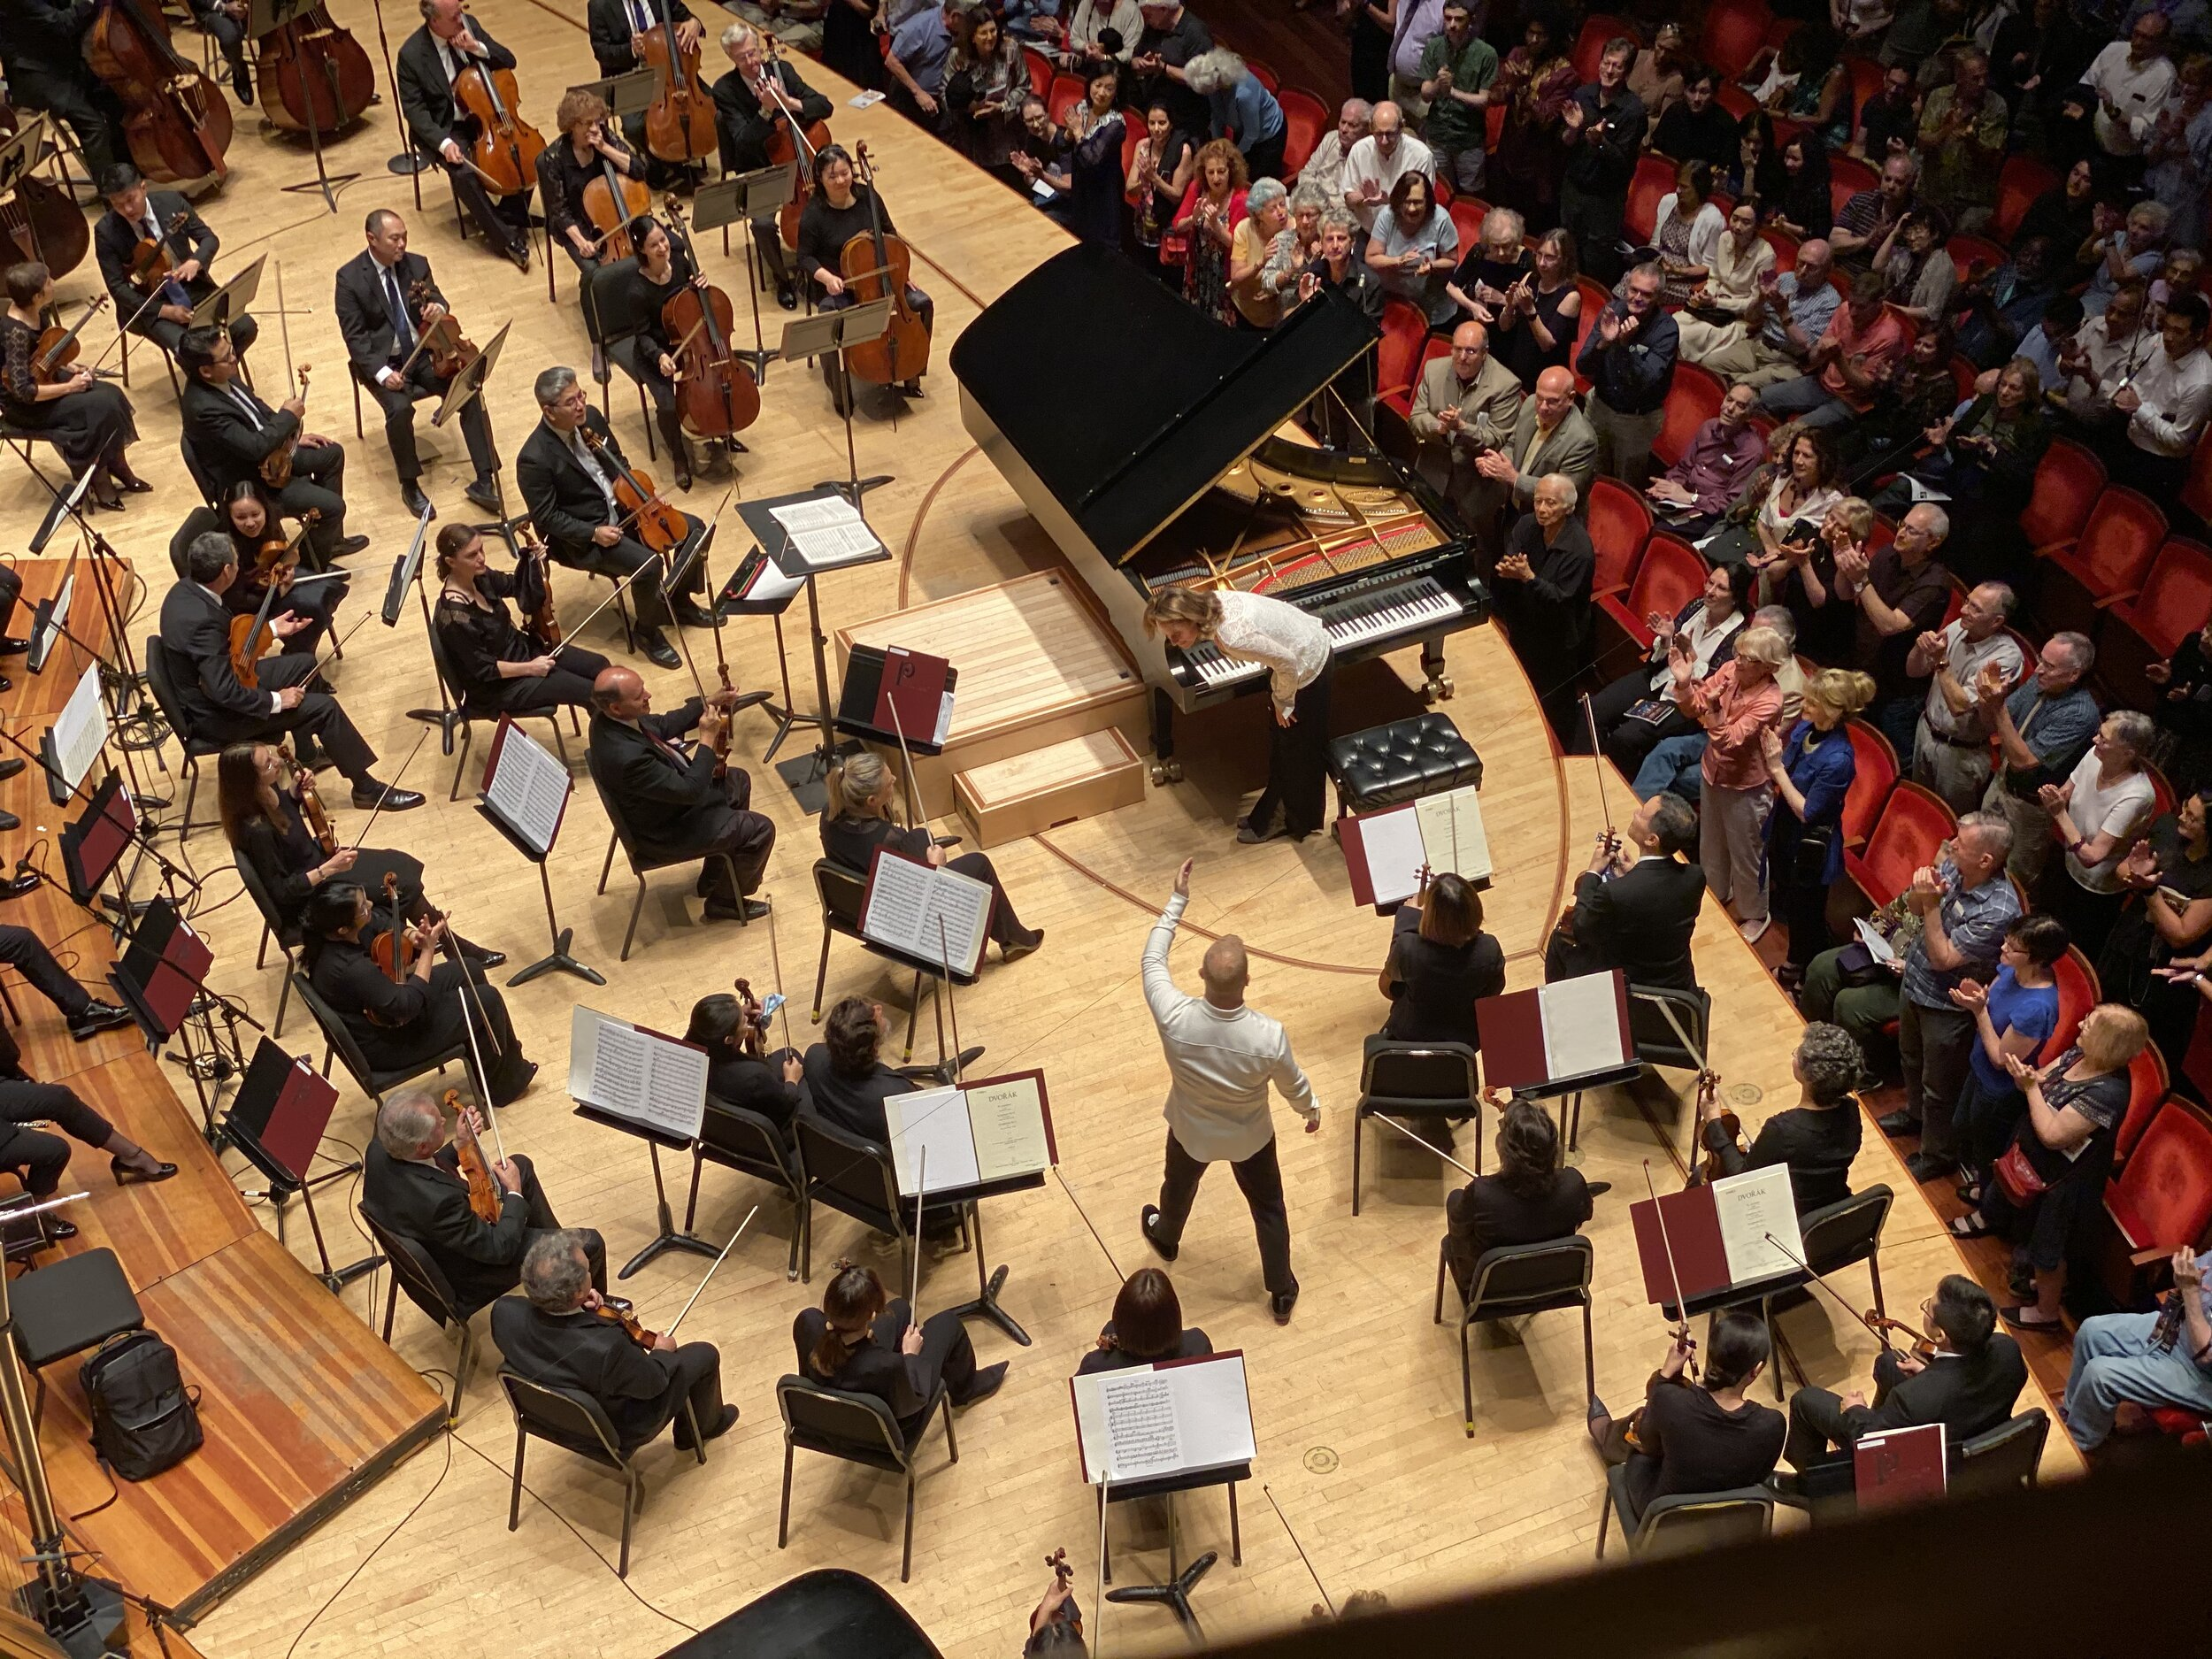 Yannick and Hélène Grimaud taking bows after the concerto